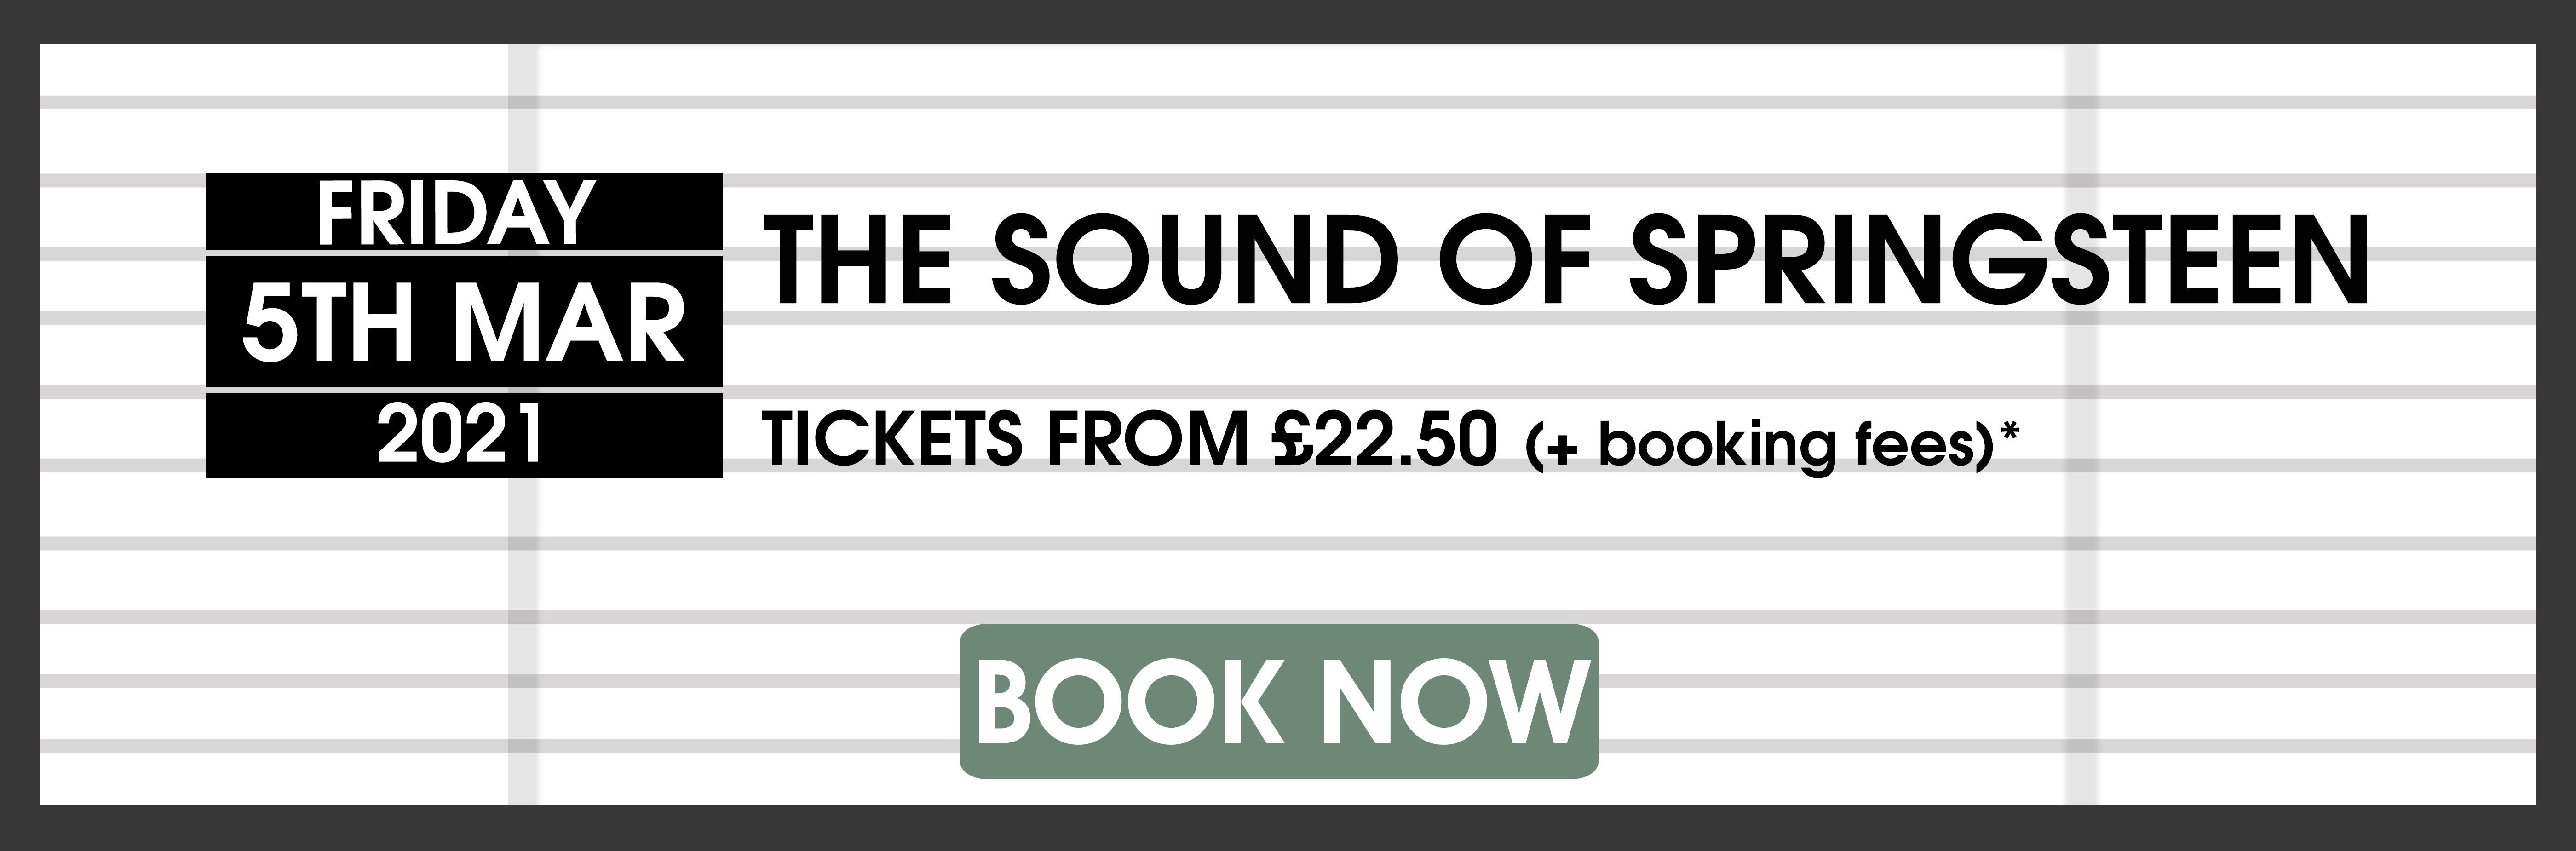 2021-05-03 SOS BOOK NOW